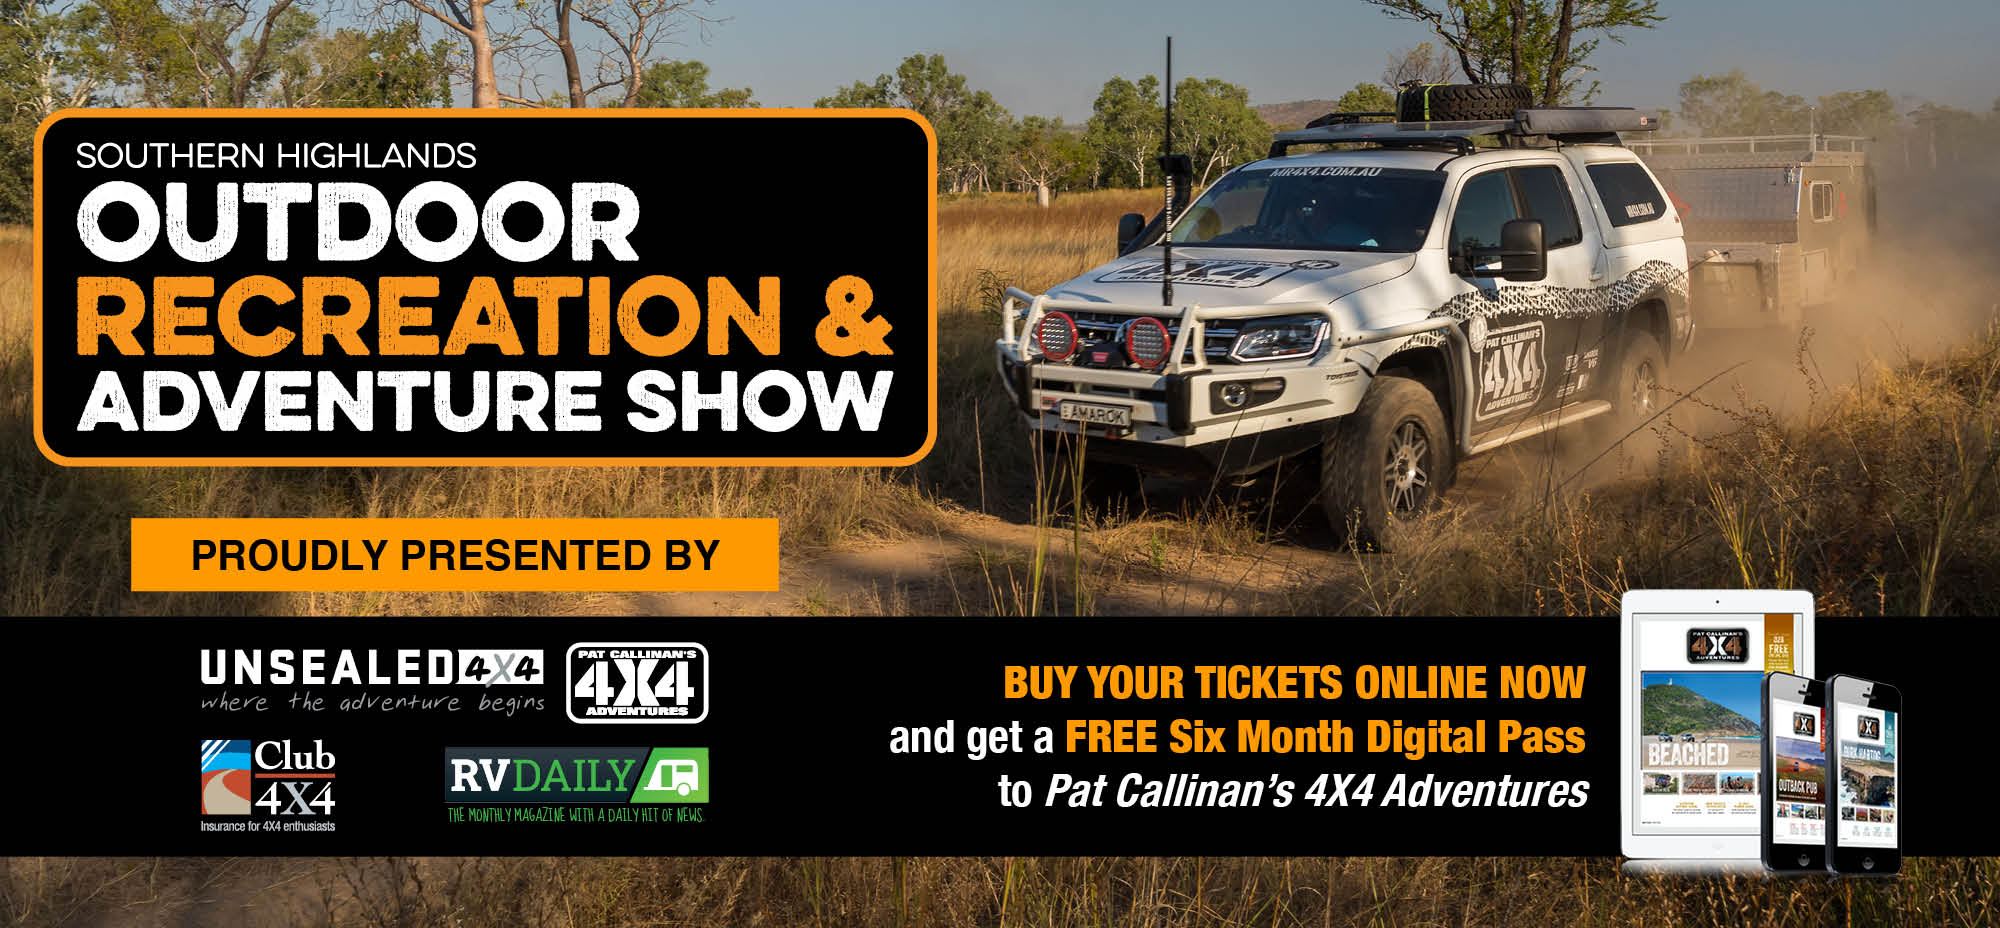 Southern Highlands Outdoor Recreation and Adventure Show